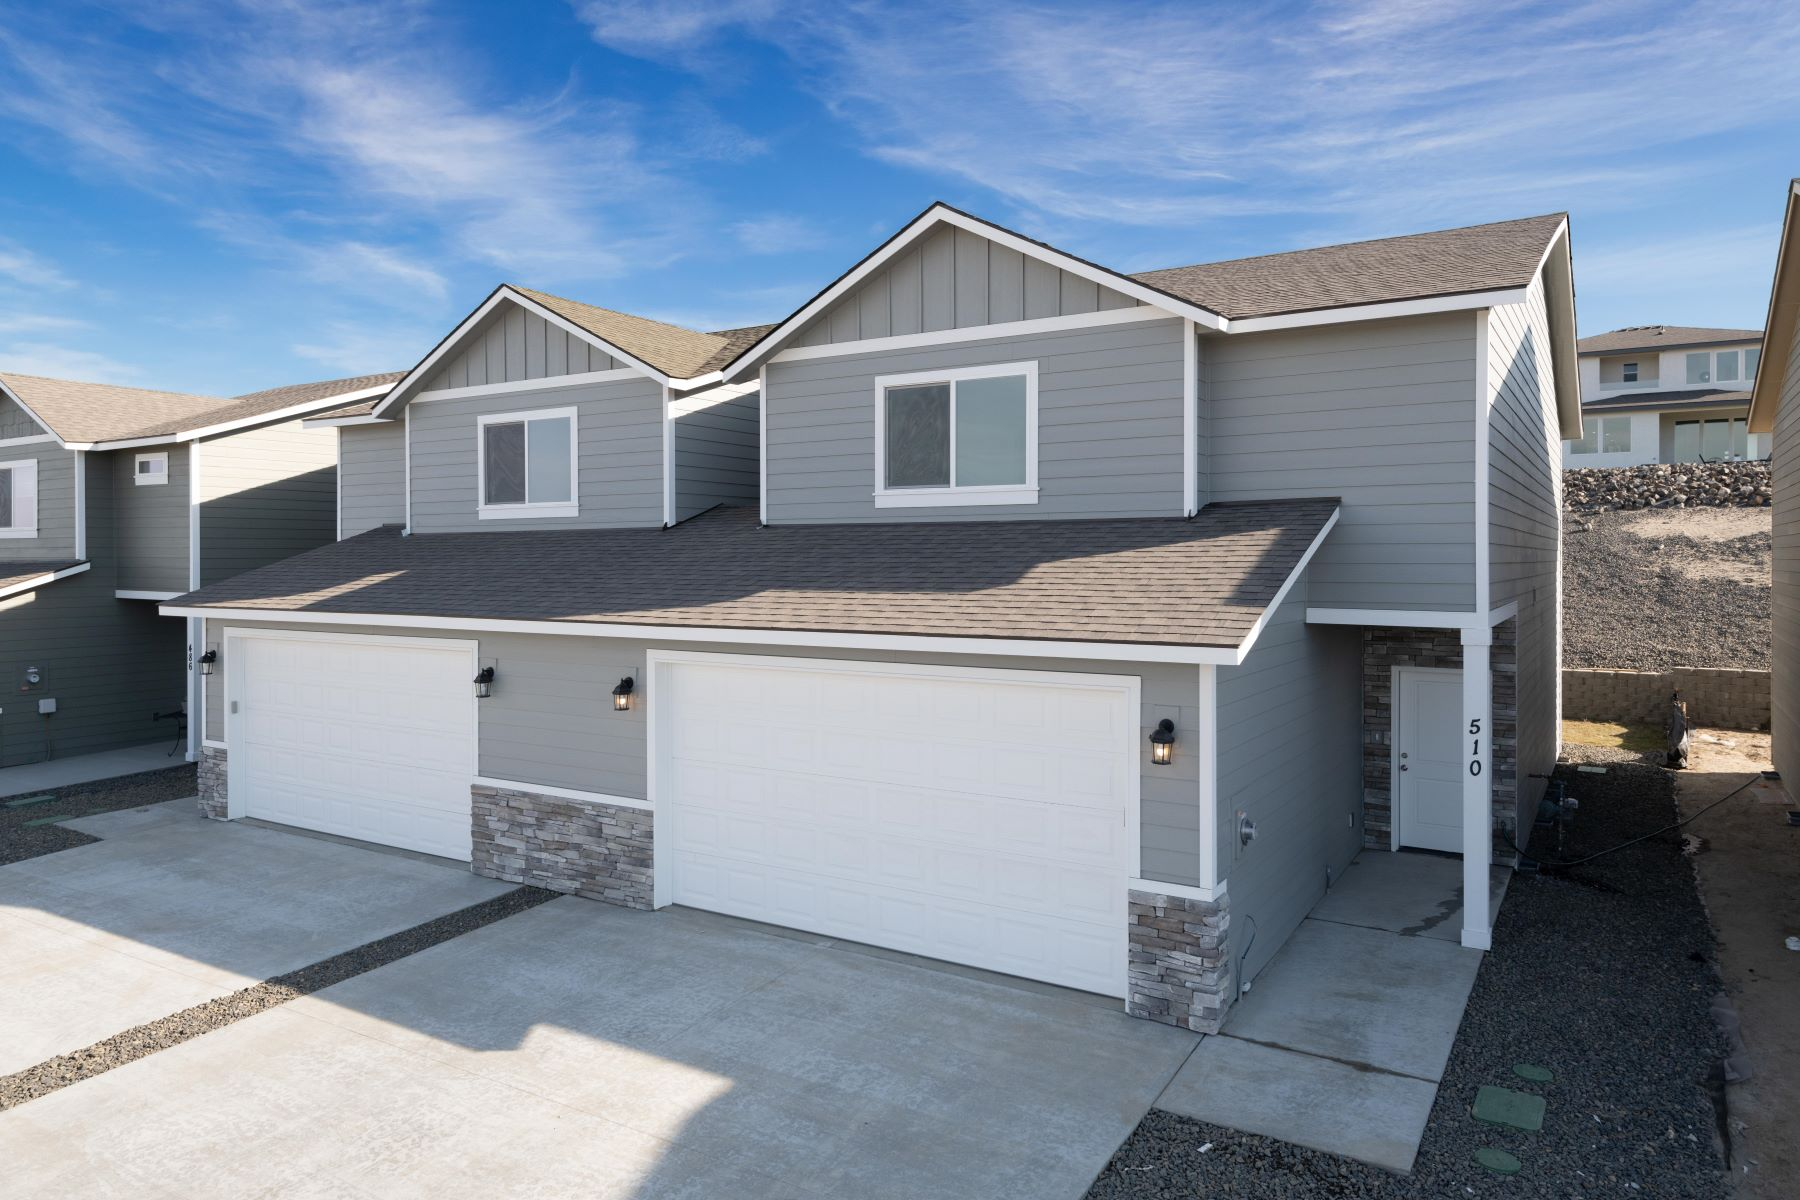 townhouses for Sale at NEW TOWNHOME COMMUNITY WITH VIEWS 510 Bedrock Loop West Richland, Washington 99353 United States